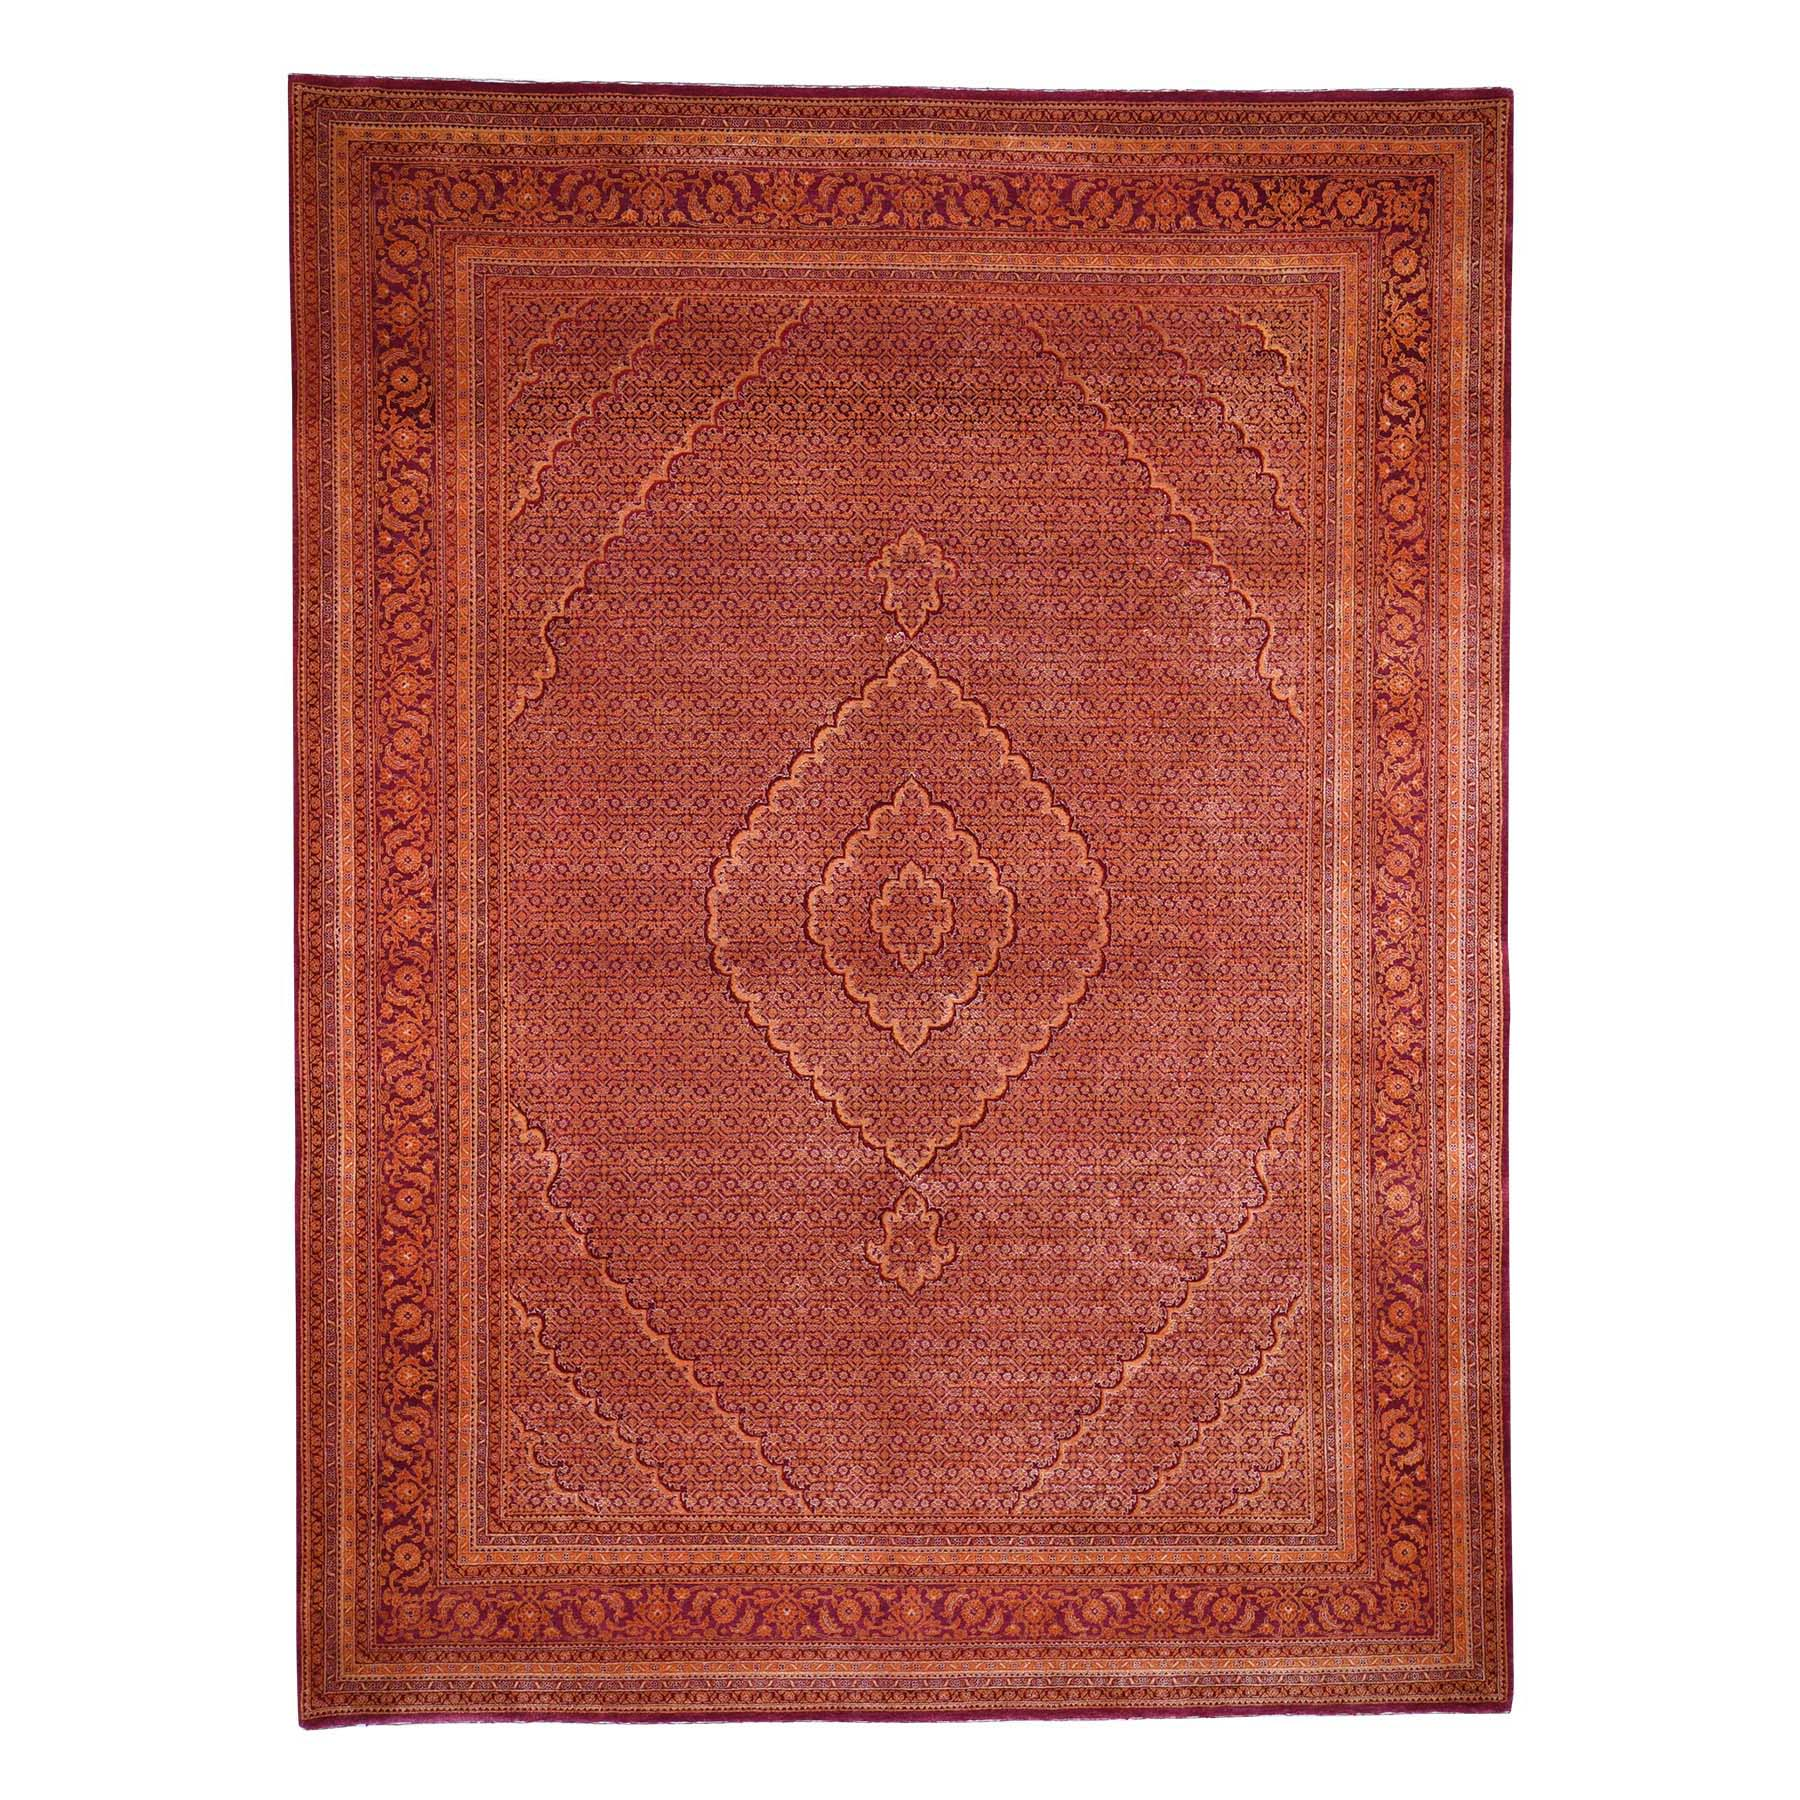 Pirniakan Collection Hand Knotted Orange Rug No: 0192074